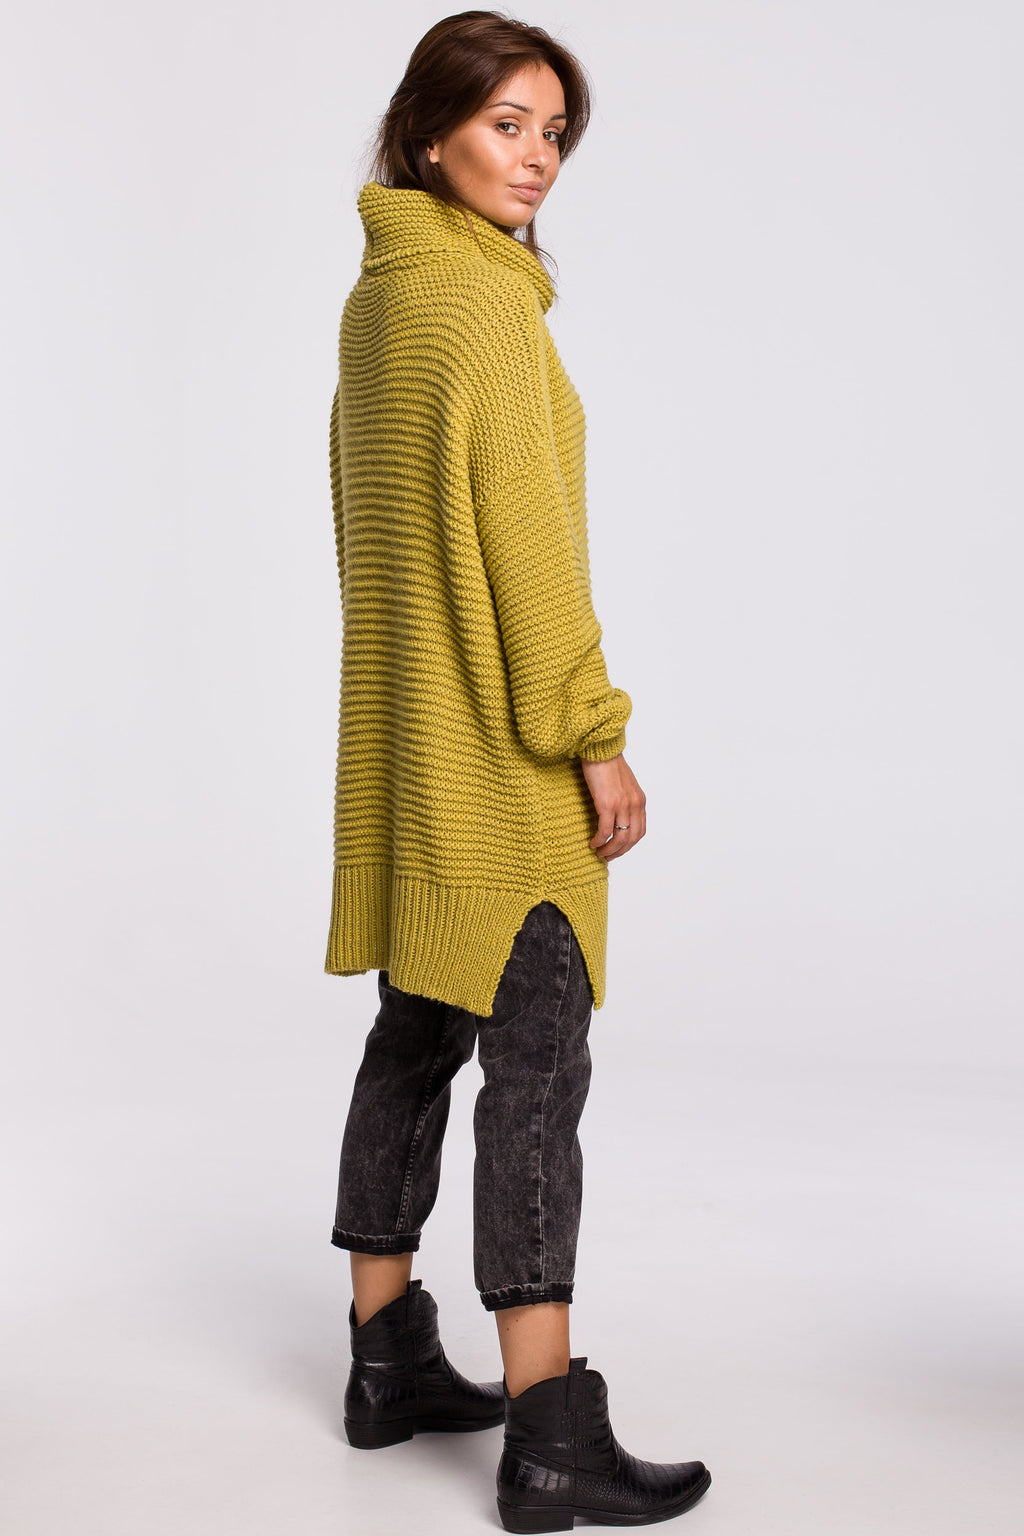 Lime Green Long Sweater With A Turtleneck - So Chic Boutique